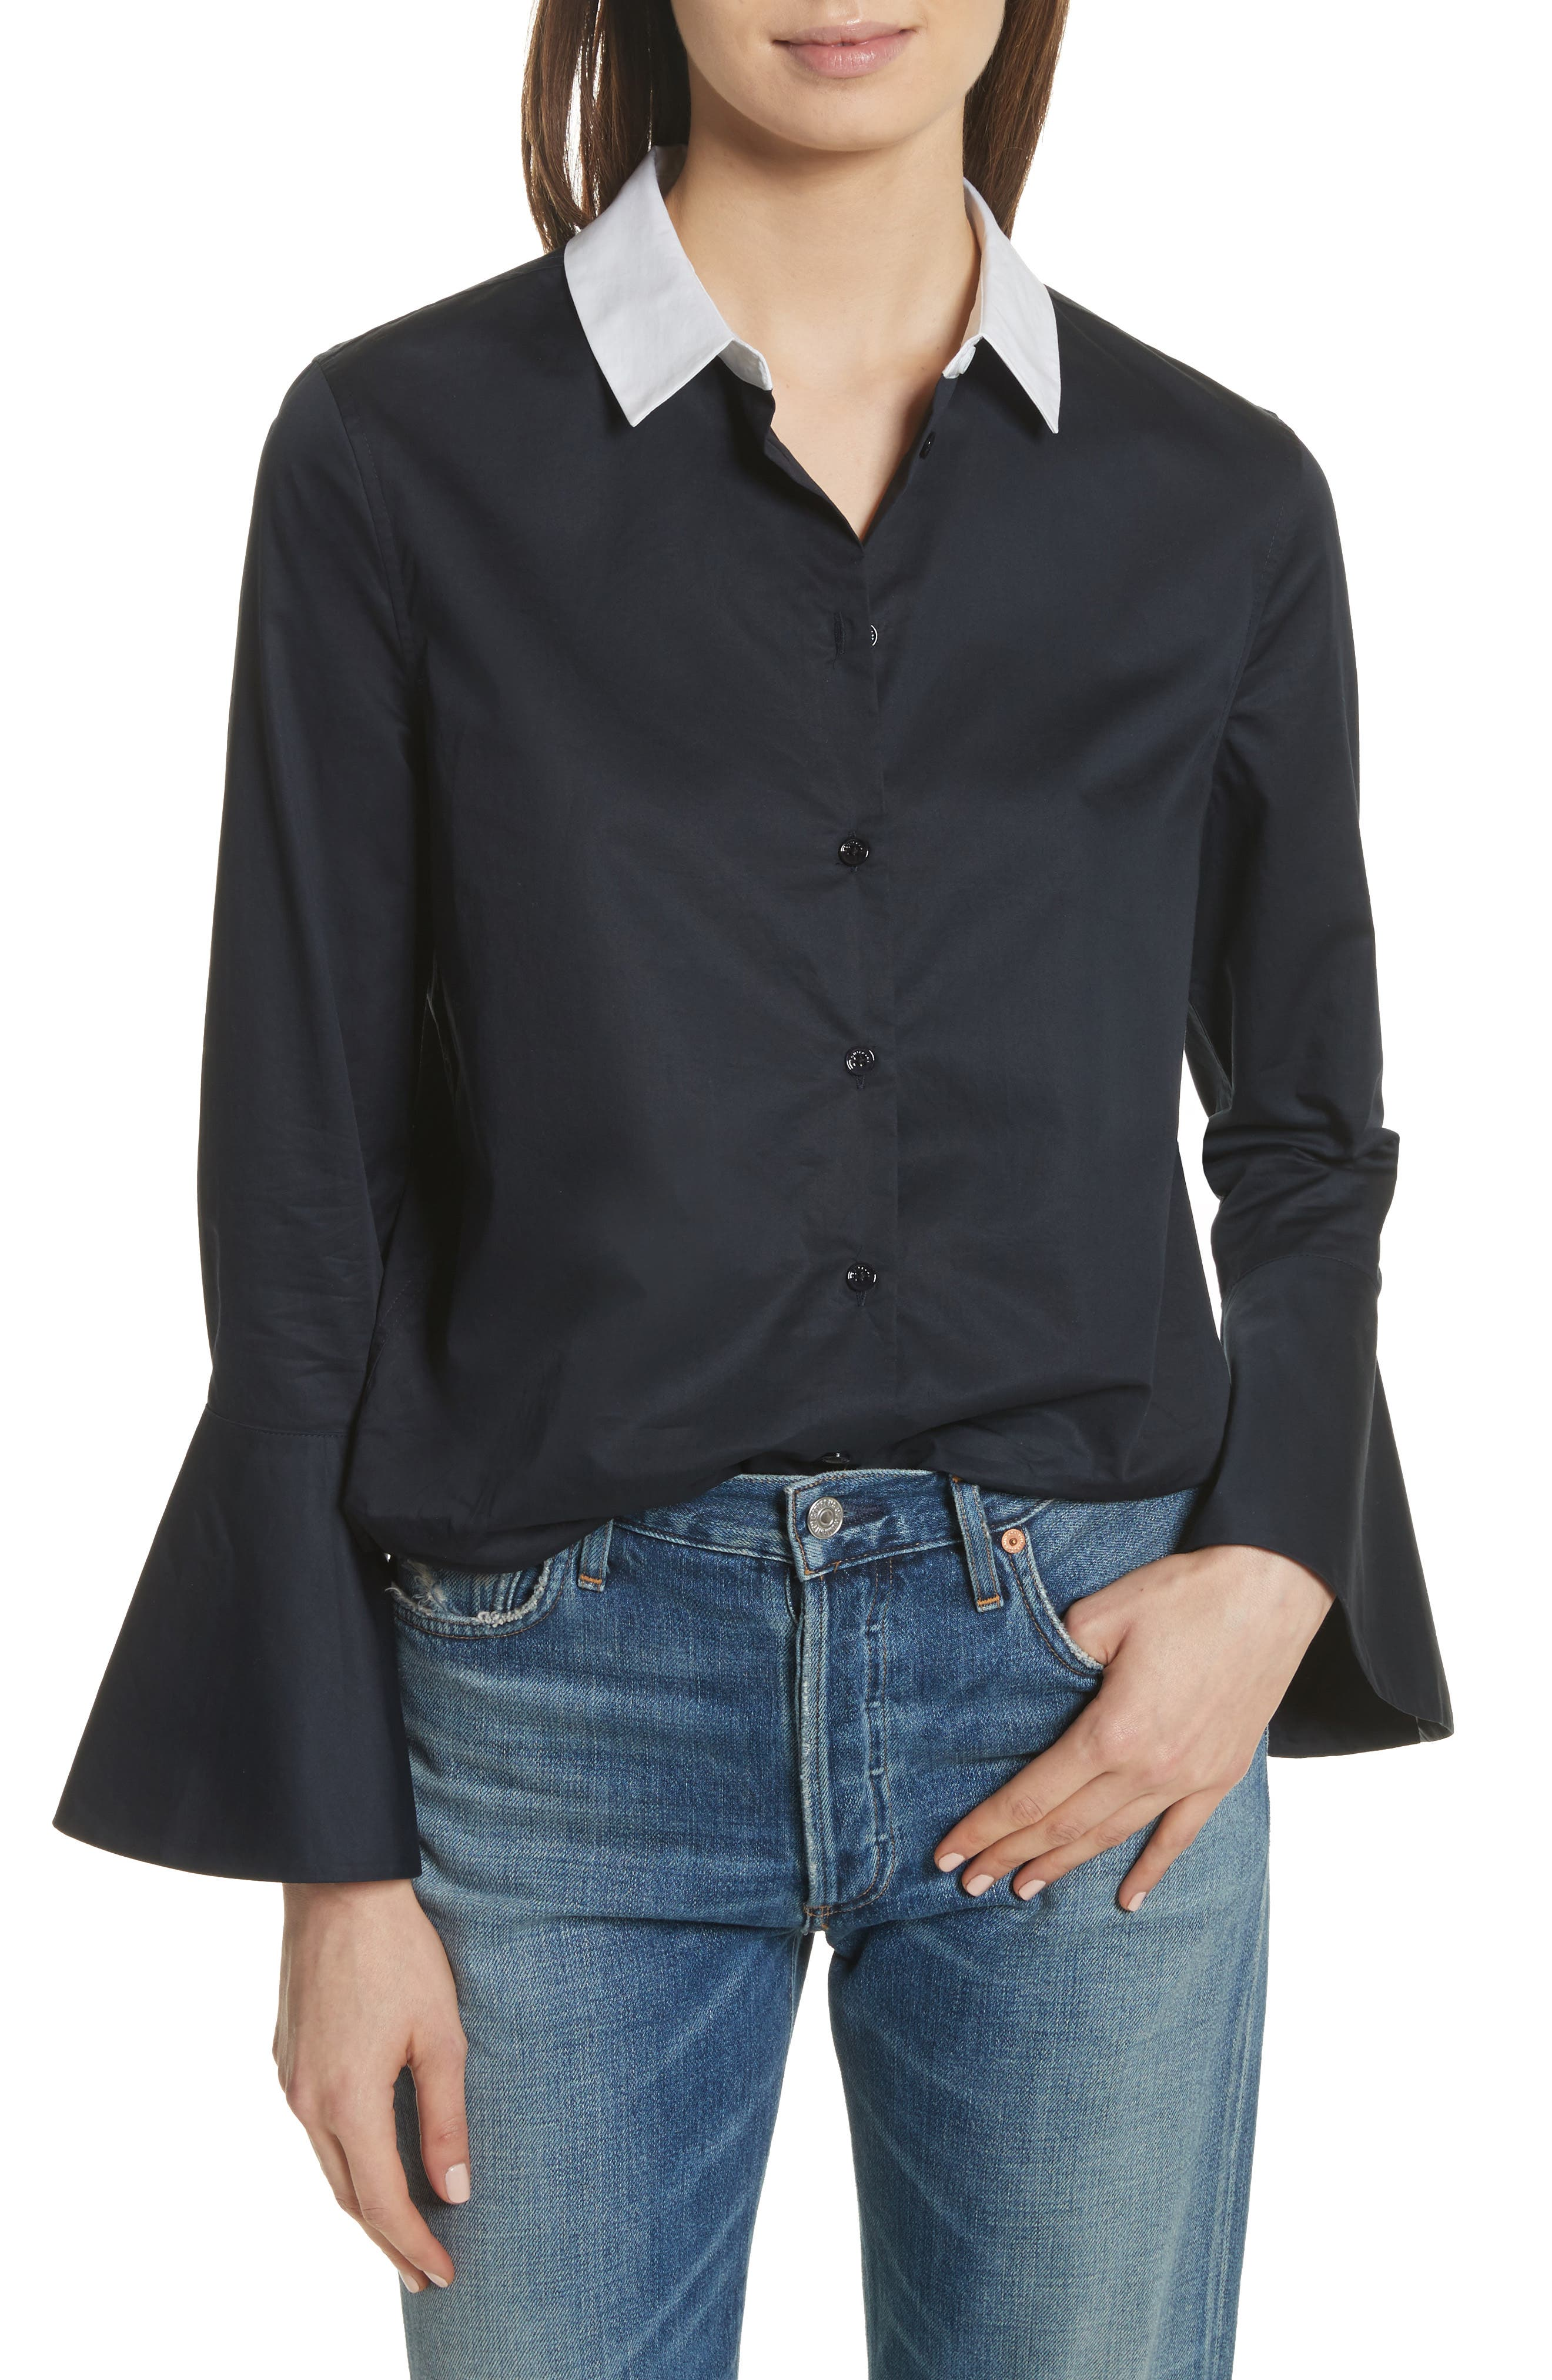 Darla Bell Cuff Shirt,                             Main thumbnail 1, color,                             Eclipse